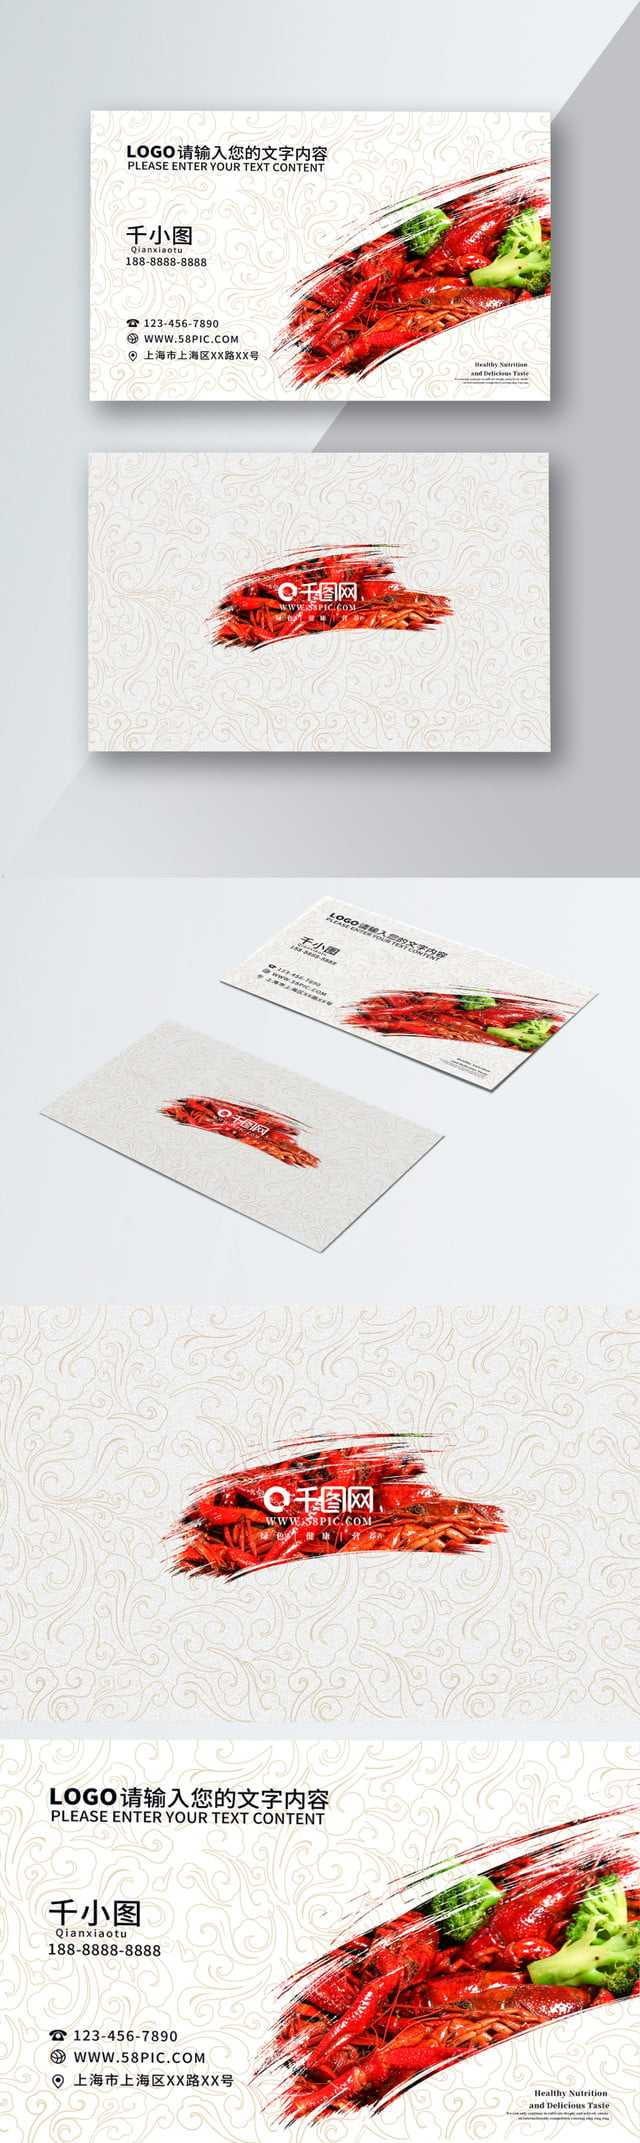 Fast Food Business Card Lunch Box Cdr Template For Free Pertaining To Food Business Cards Templates Free